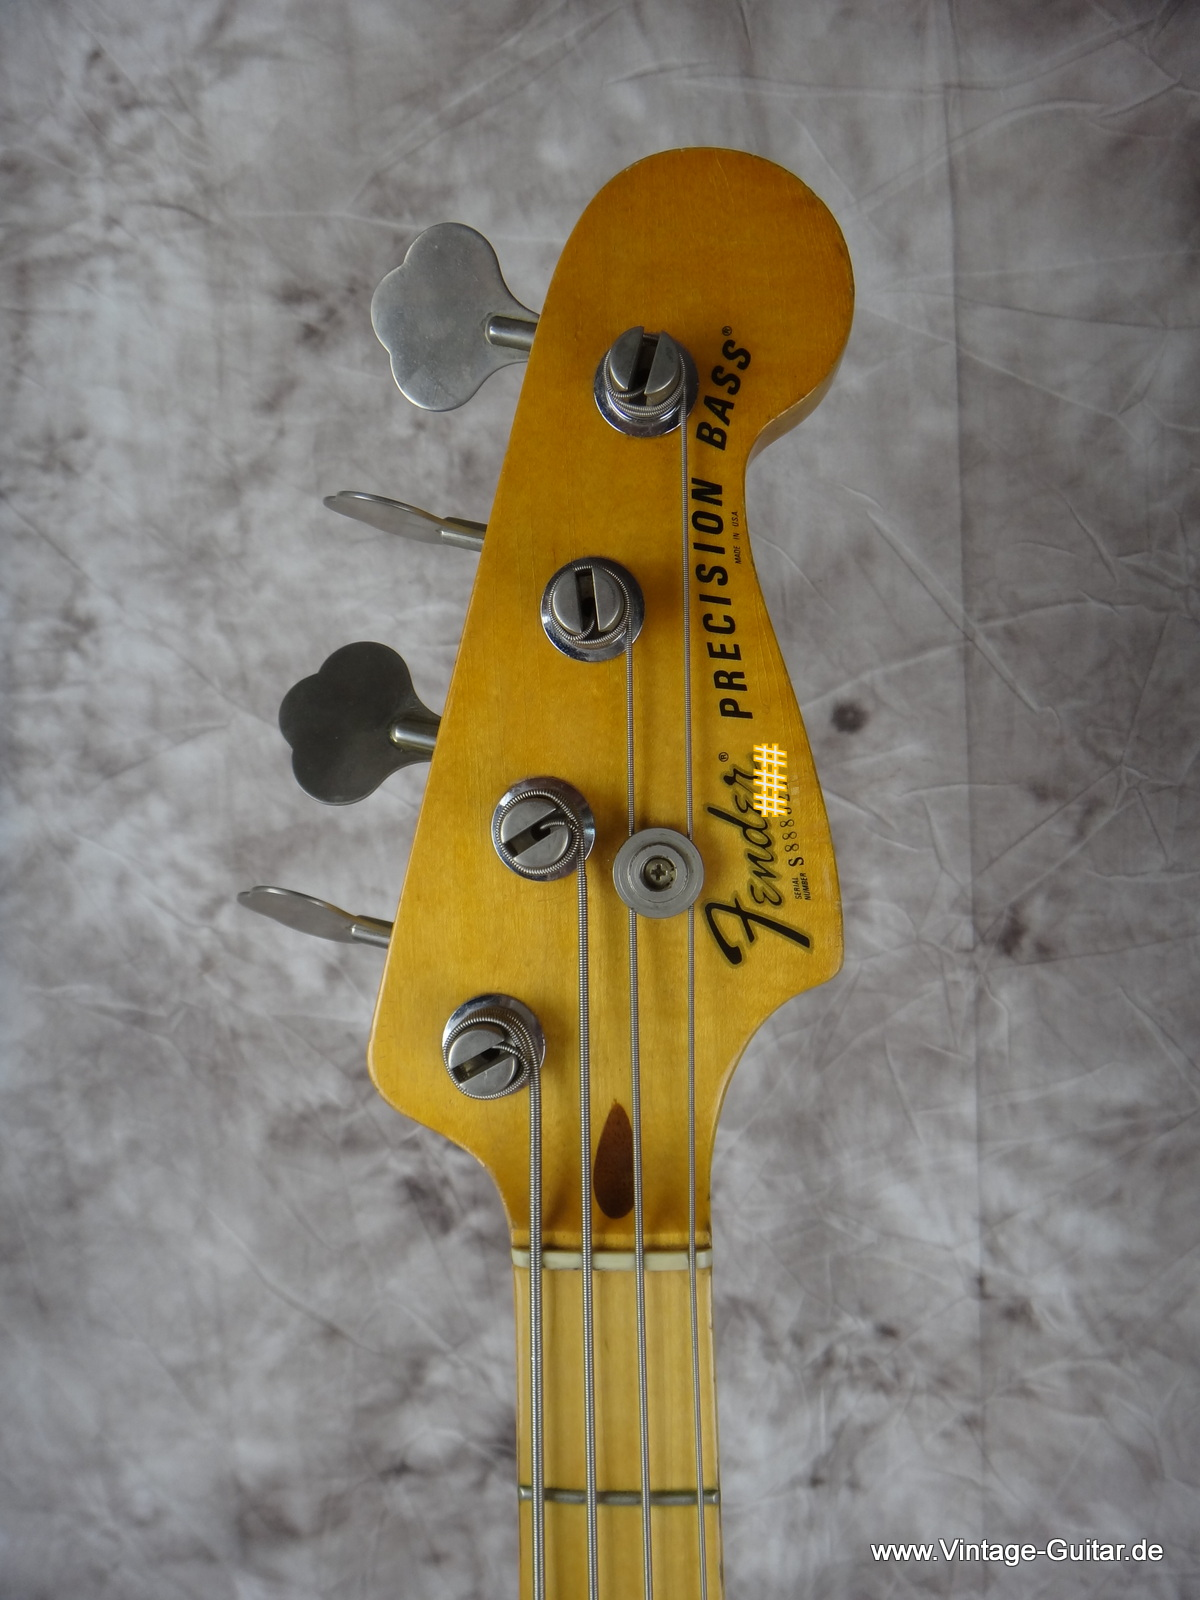 img/vintage/2039/Fender_Precision-Bass_1979-natural-005.JPG